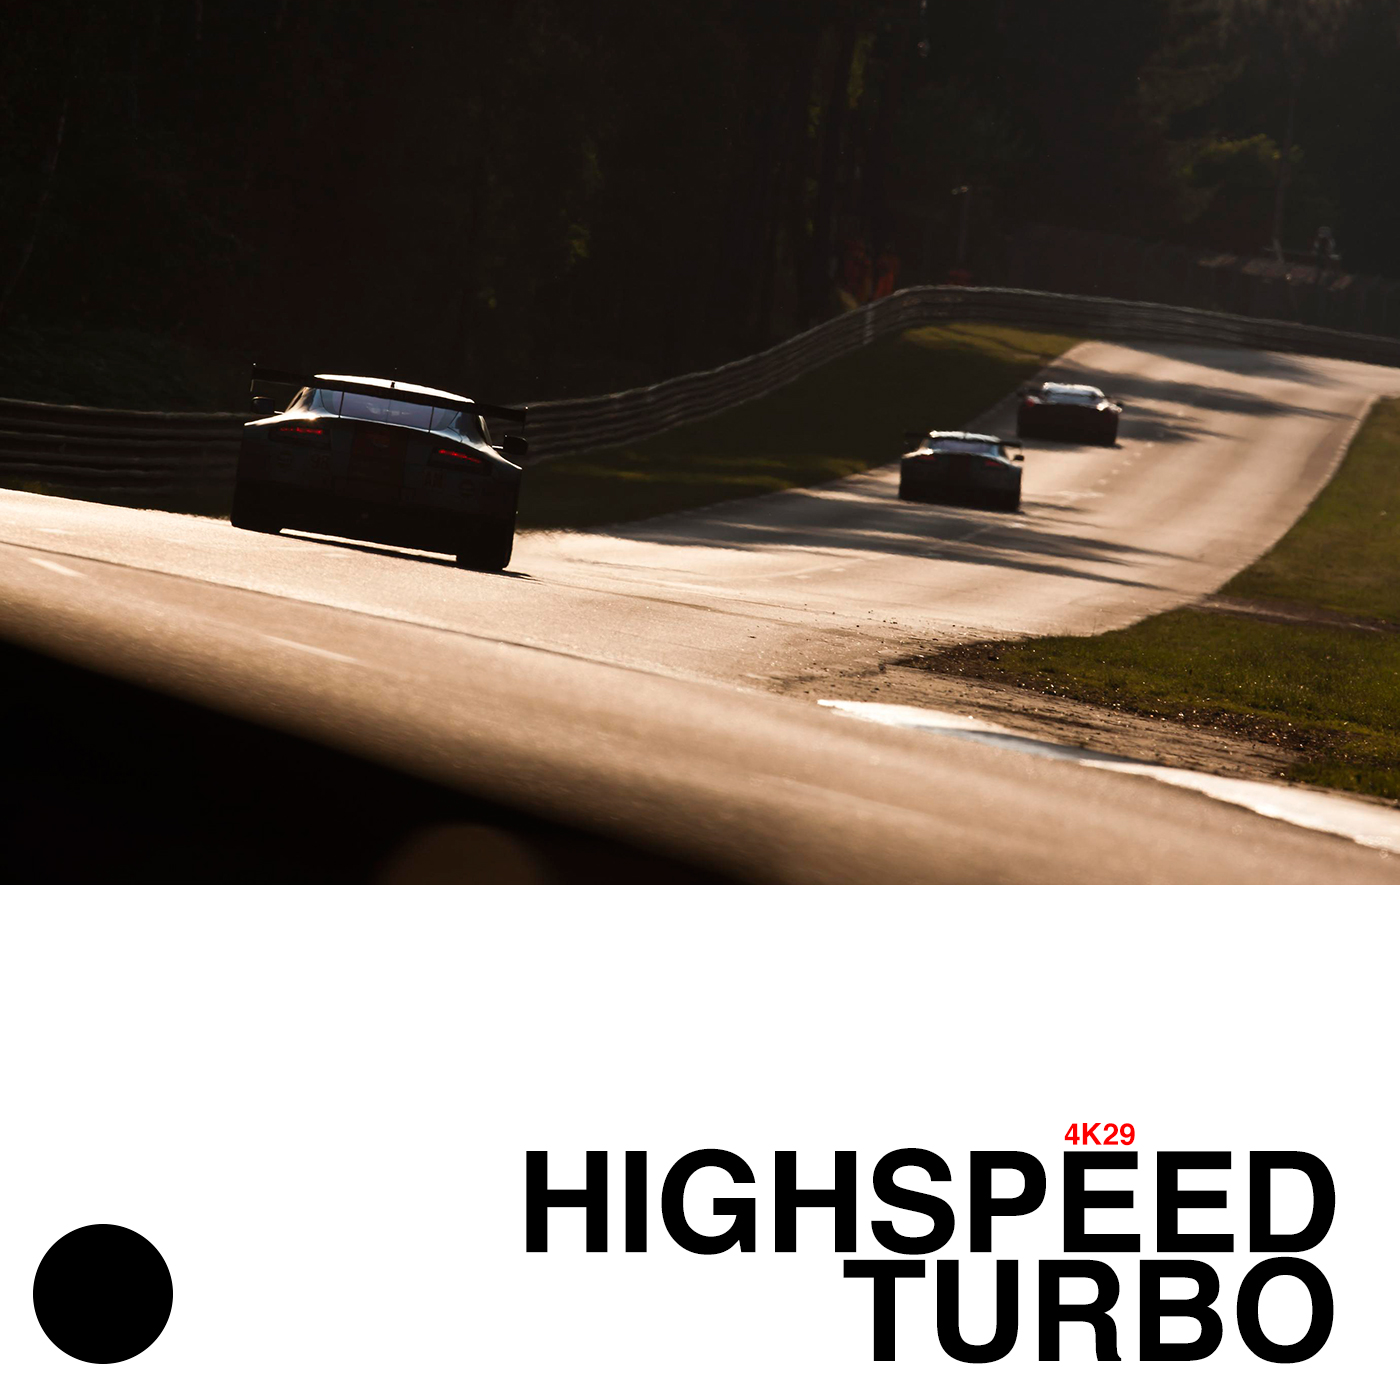 HIGH SPEED TURBO 4K29 MOBILE640